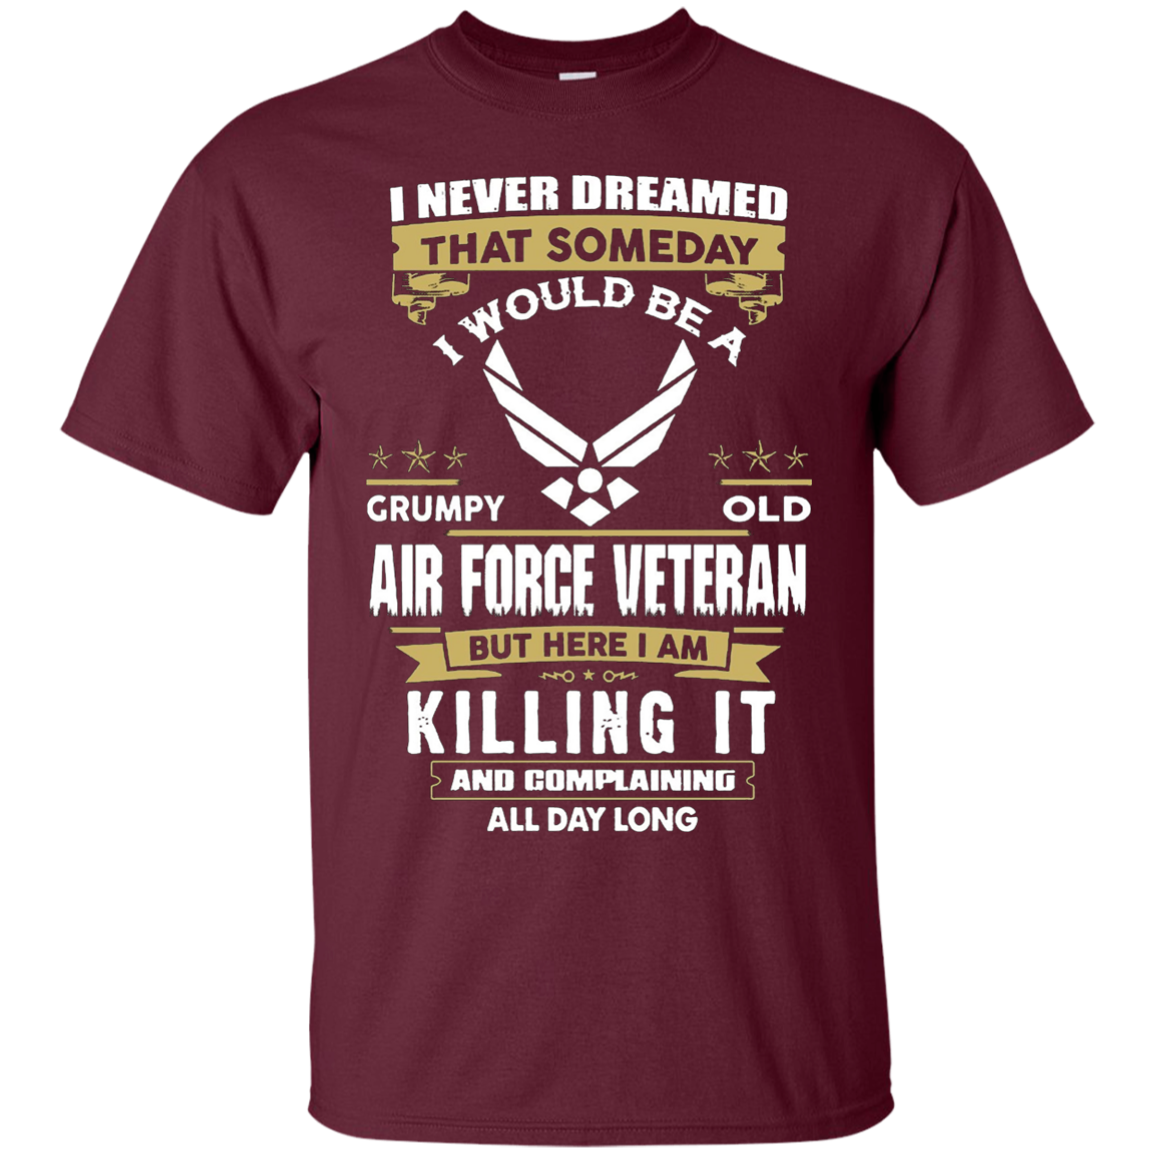 grumpy old air force veteran T-shirt - T-Shirt